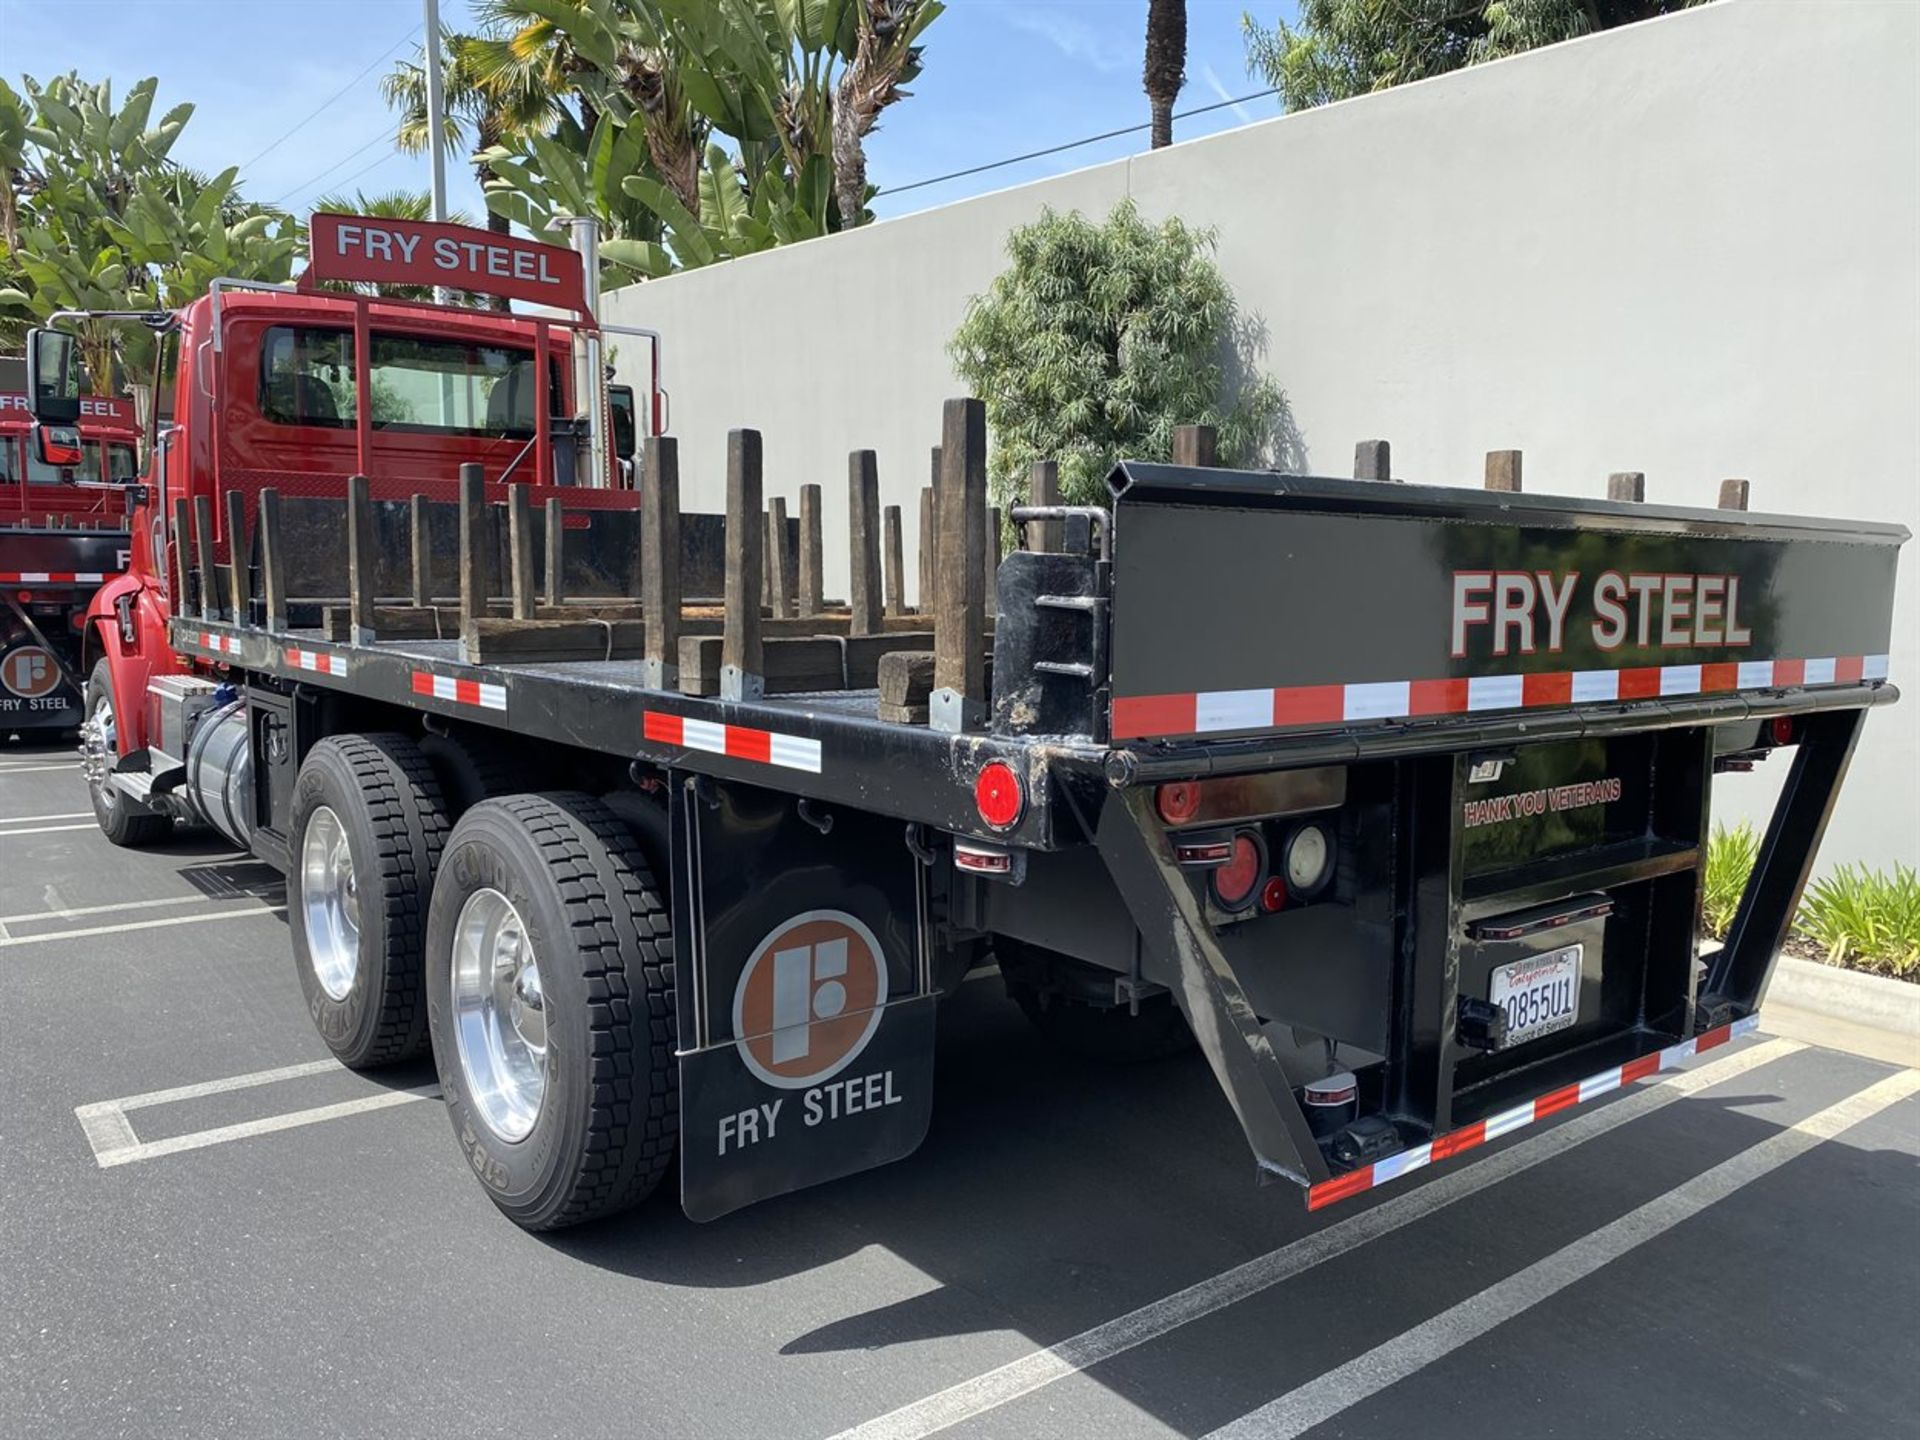 2016 INTERNATIONAL 18' Stake Bed Truck, VIN 3HTHXSNR1GN003236, 125,809 Miles at time of inspection - Image 4 of 20